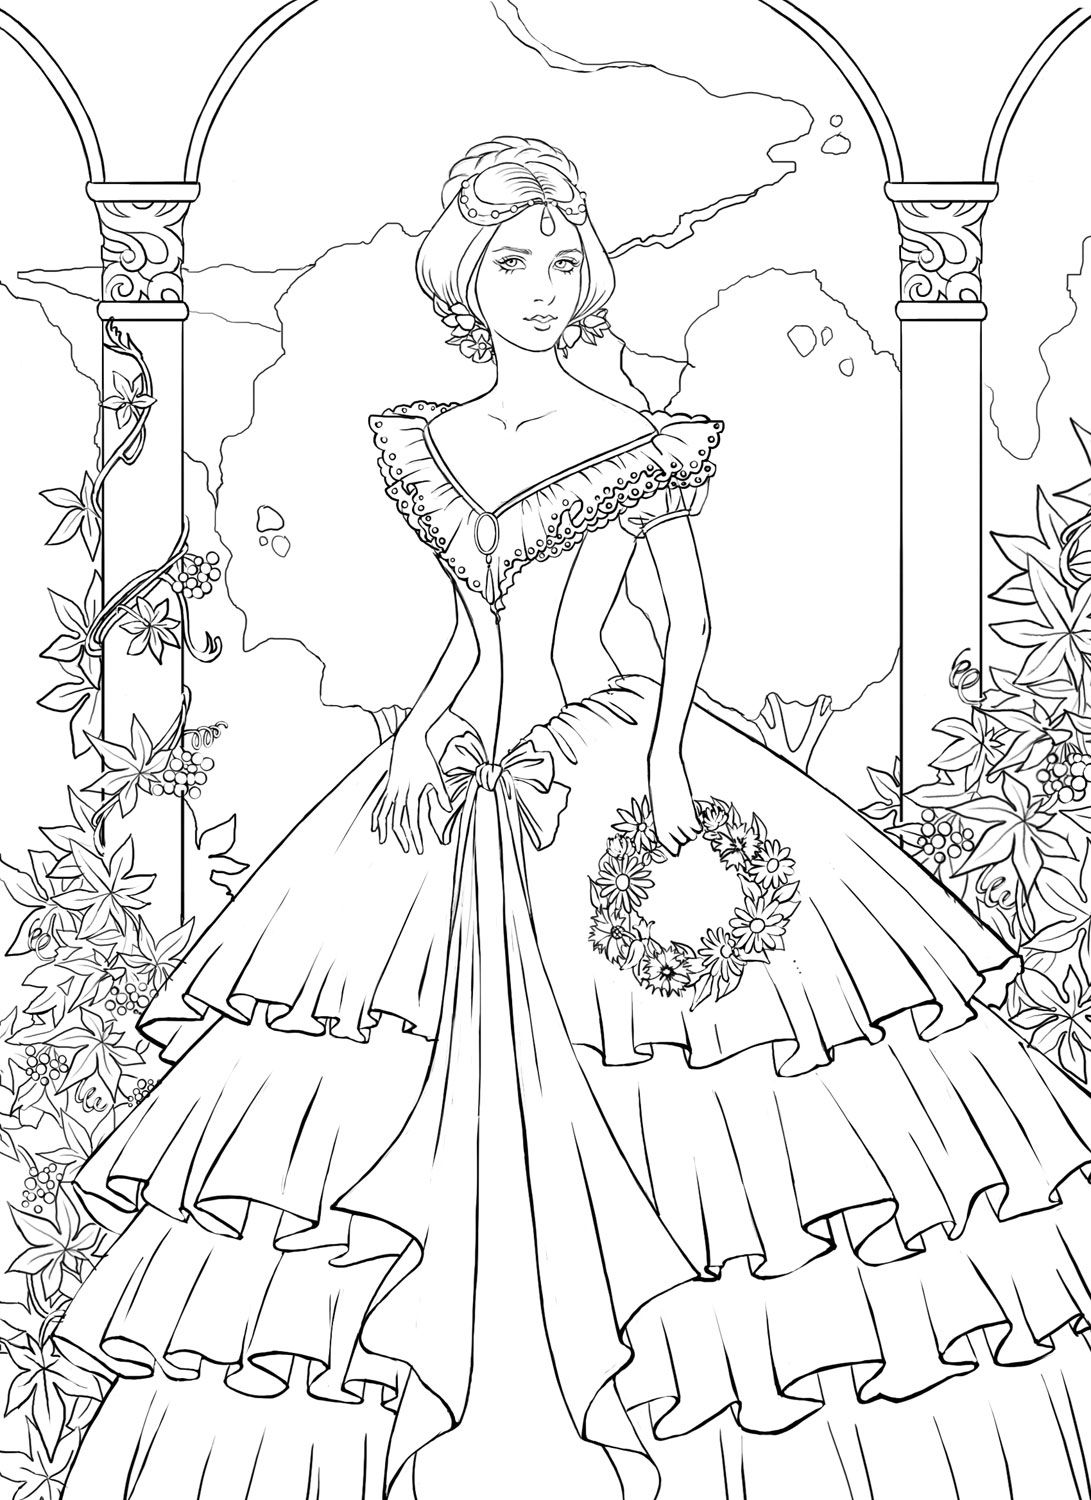 Detailed coloring pages for adults detailed coloring pages